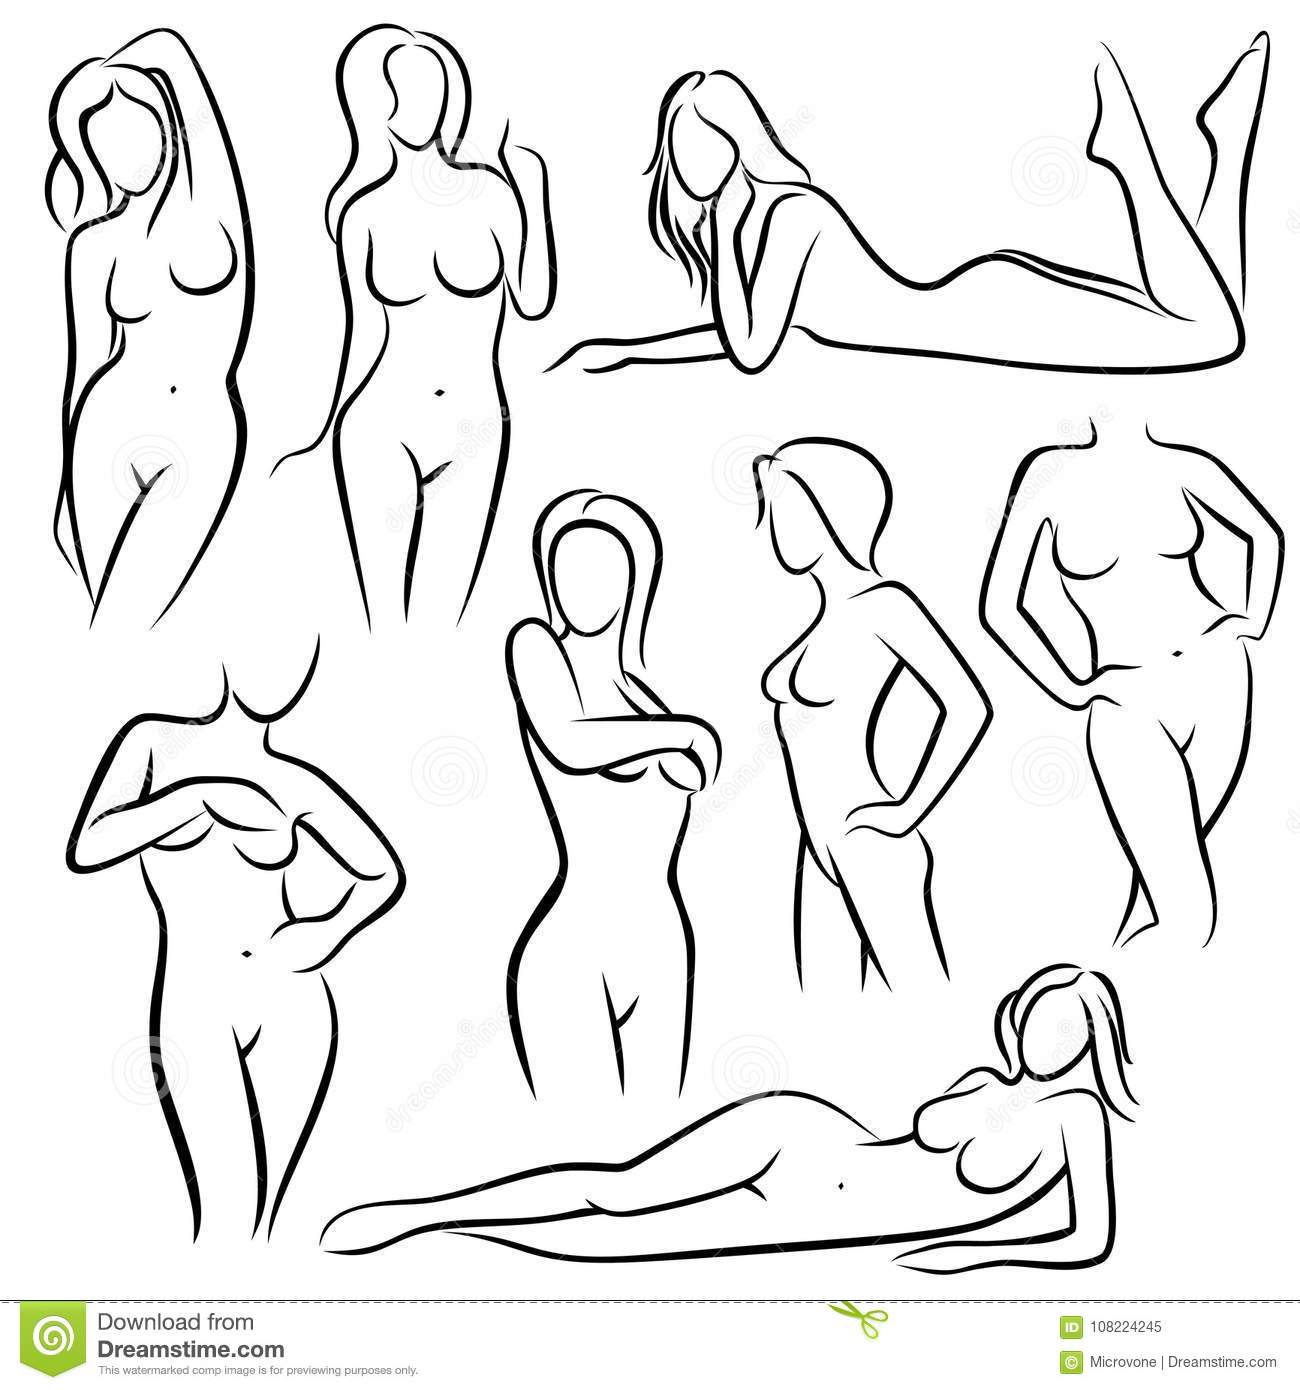 a38bcce6a Outline beautiful woman vector silhouettes. Line female body beauty  symbols. Sketch of woman model posing